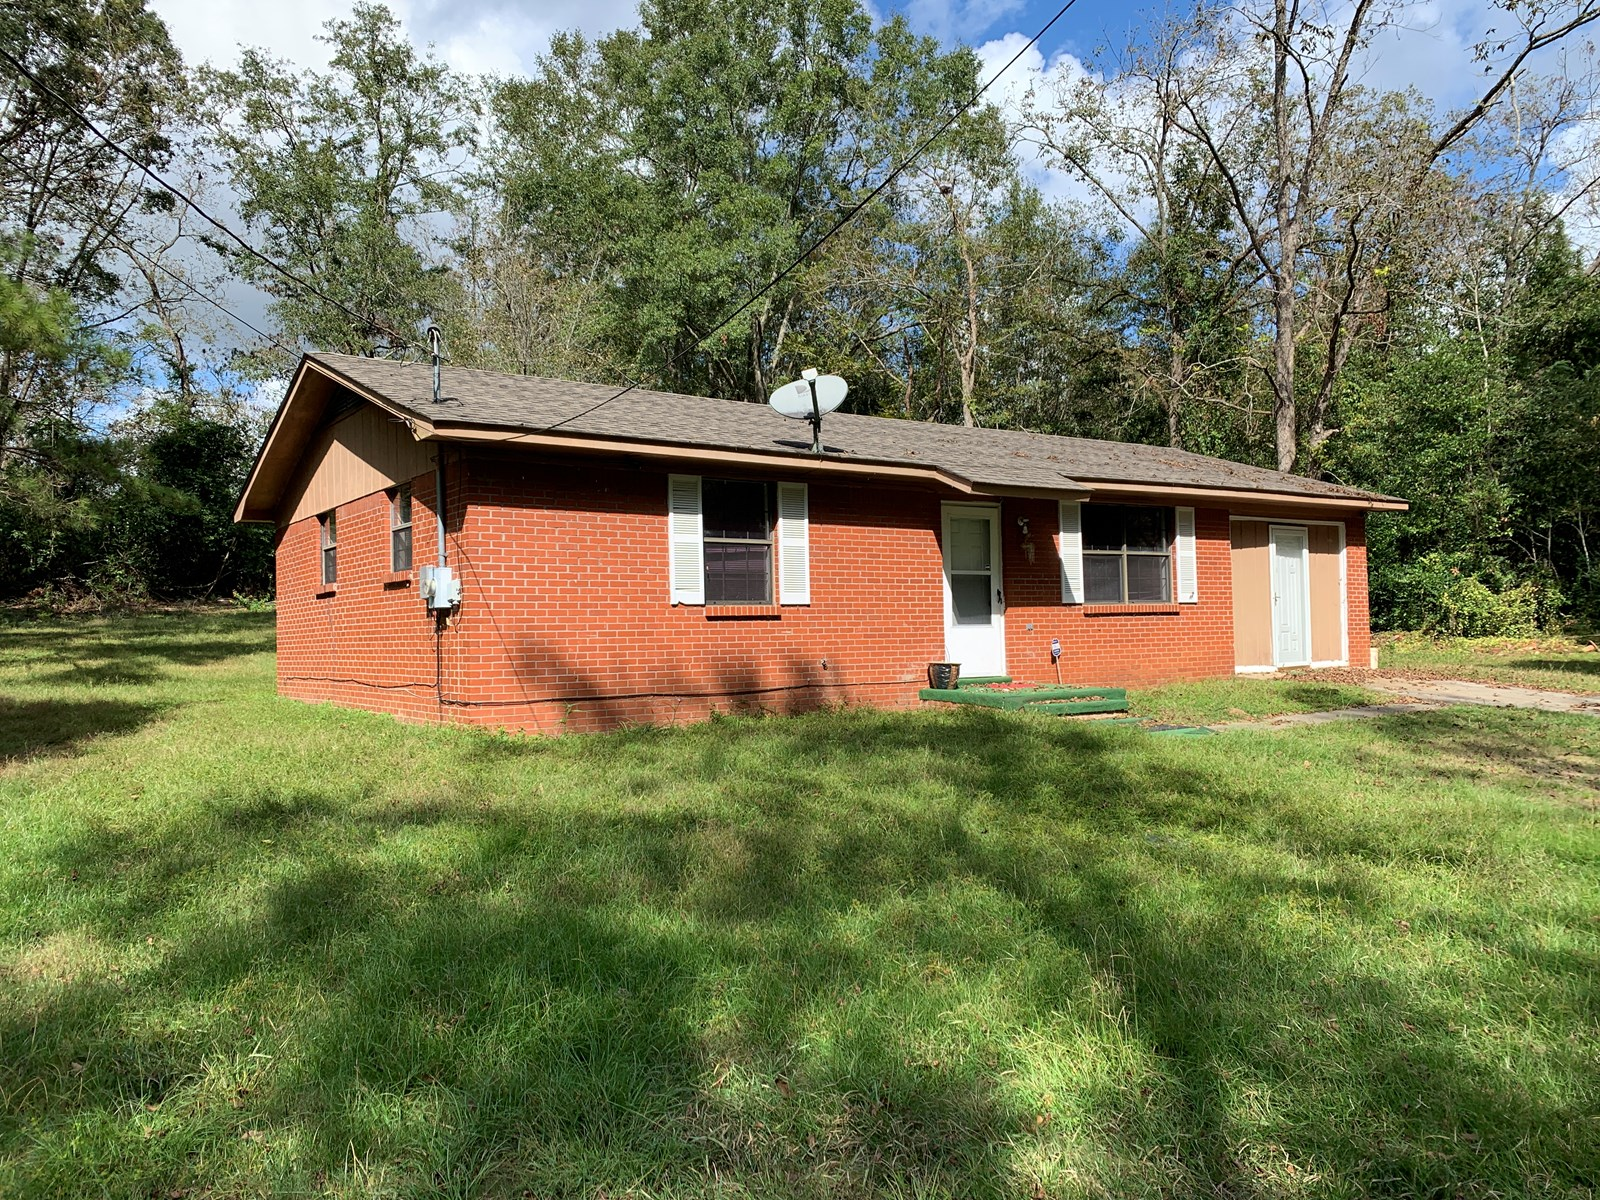 Home and 2 acres for Sale in Brundidge, Alabama